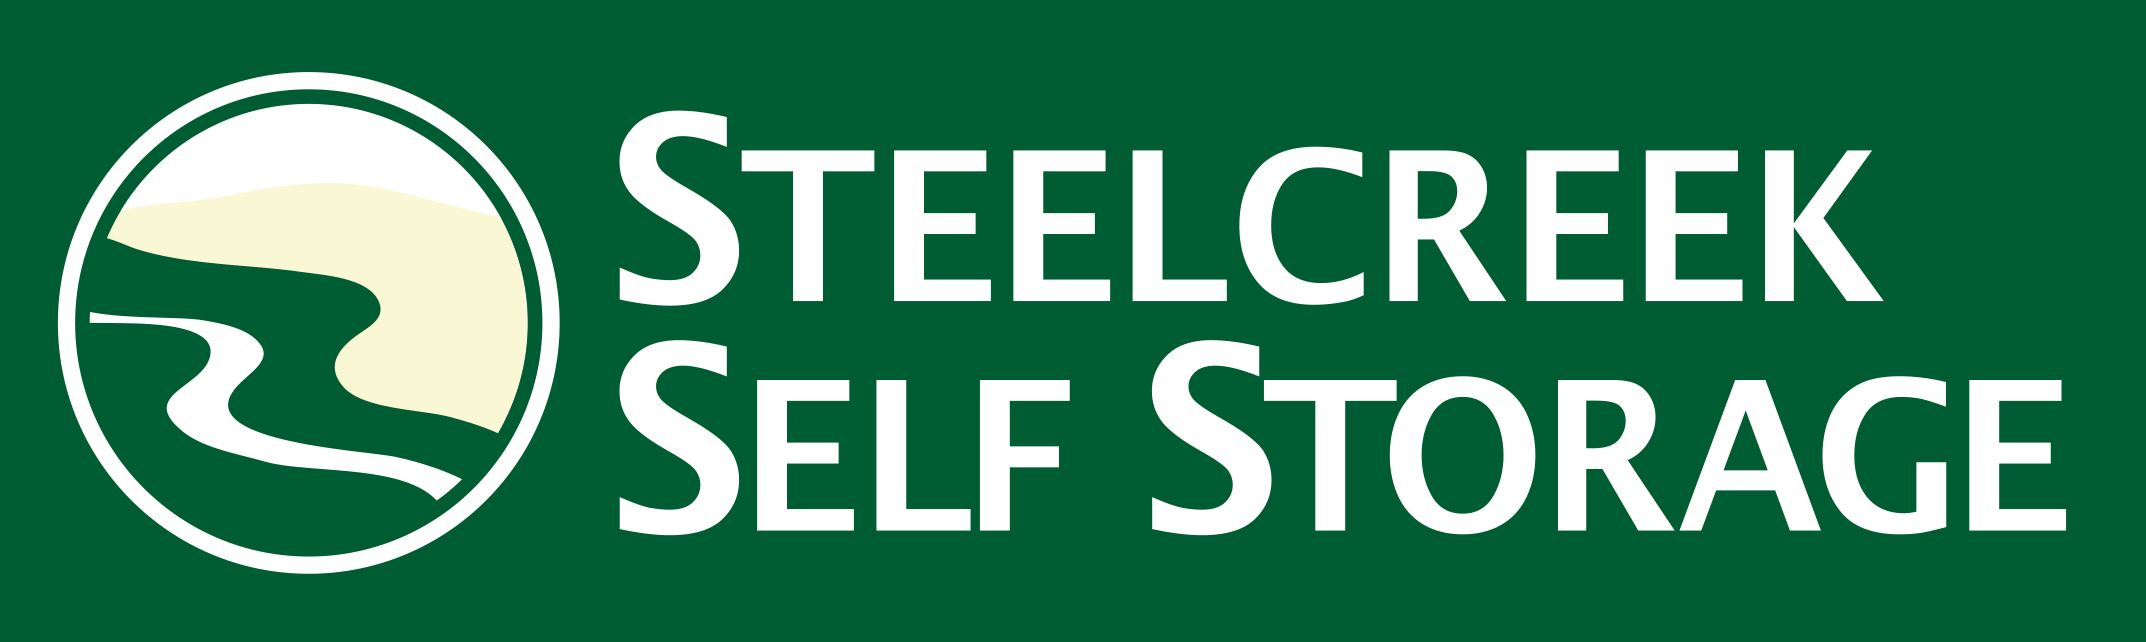 Steelcreek Self Storage